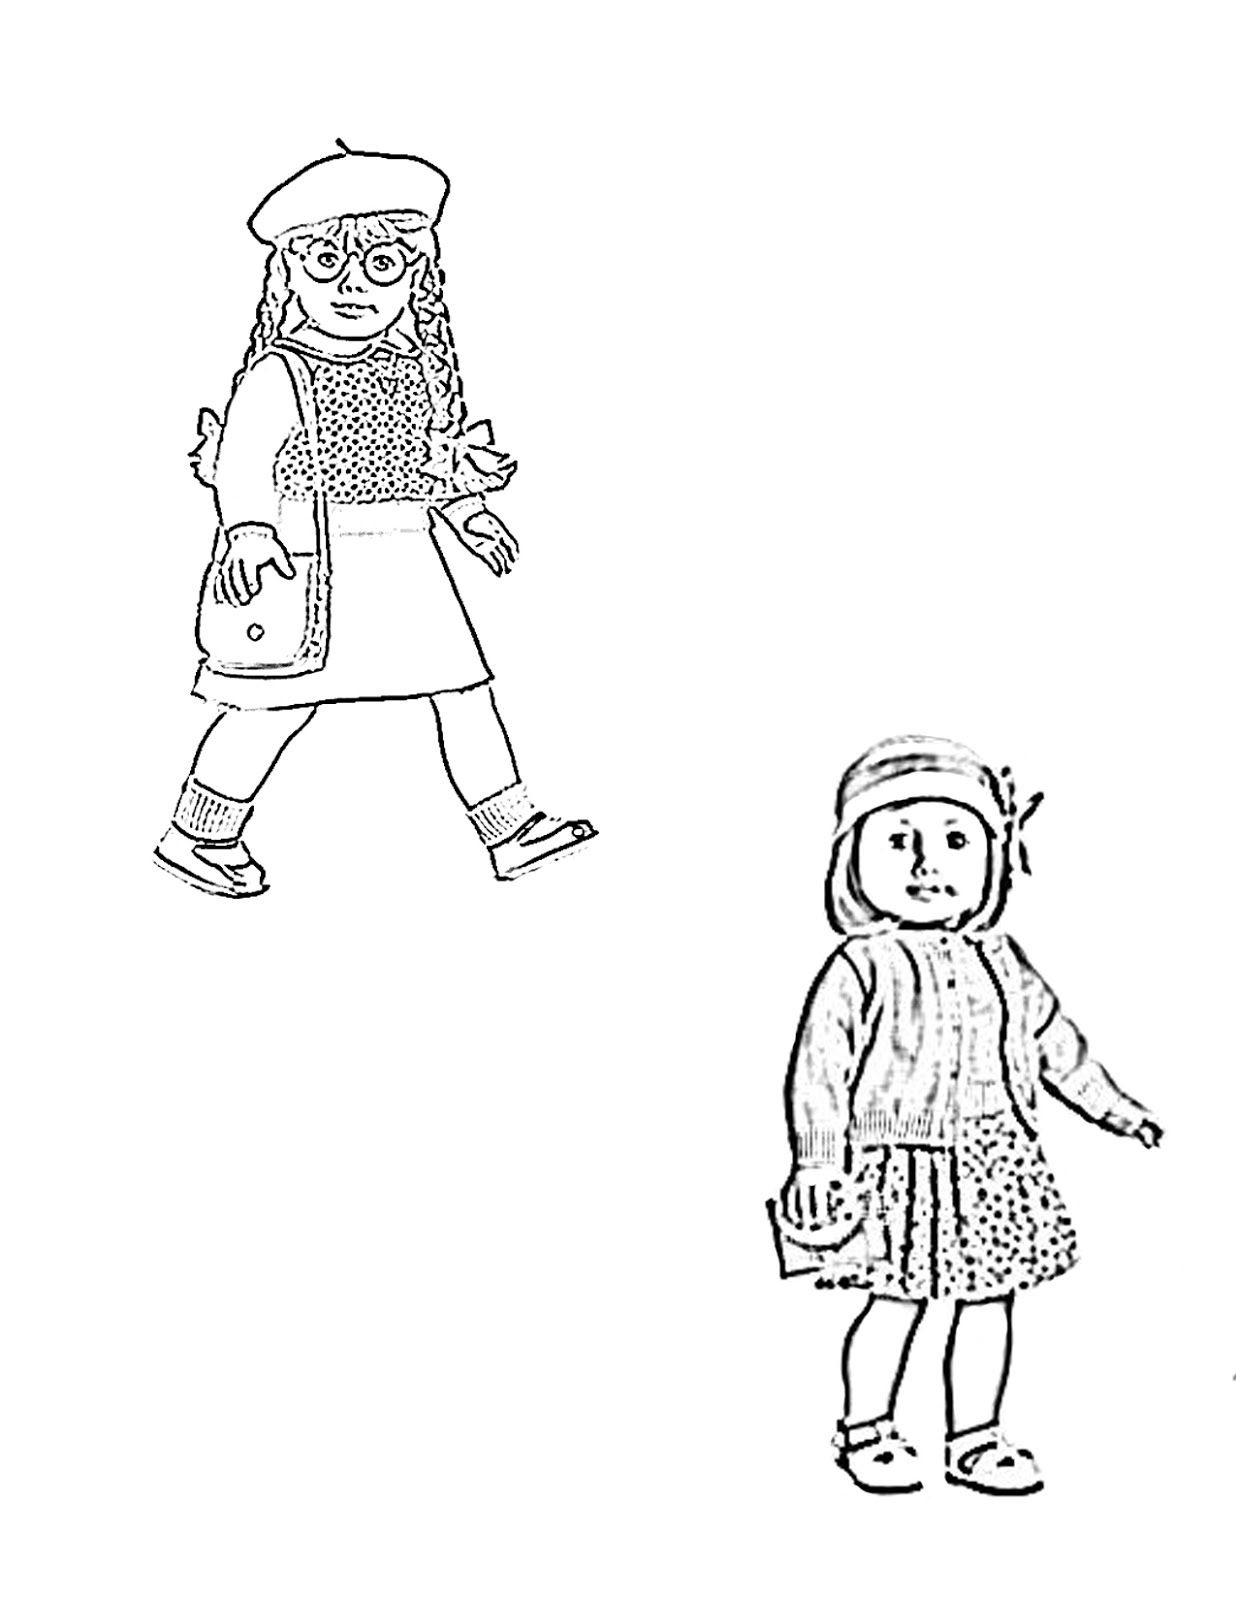 Doll Coloring Pages Printable Az Coloring Pages American Doll Coloring Pages Lea Printable